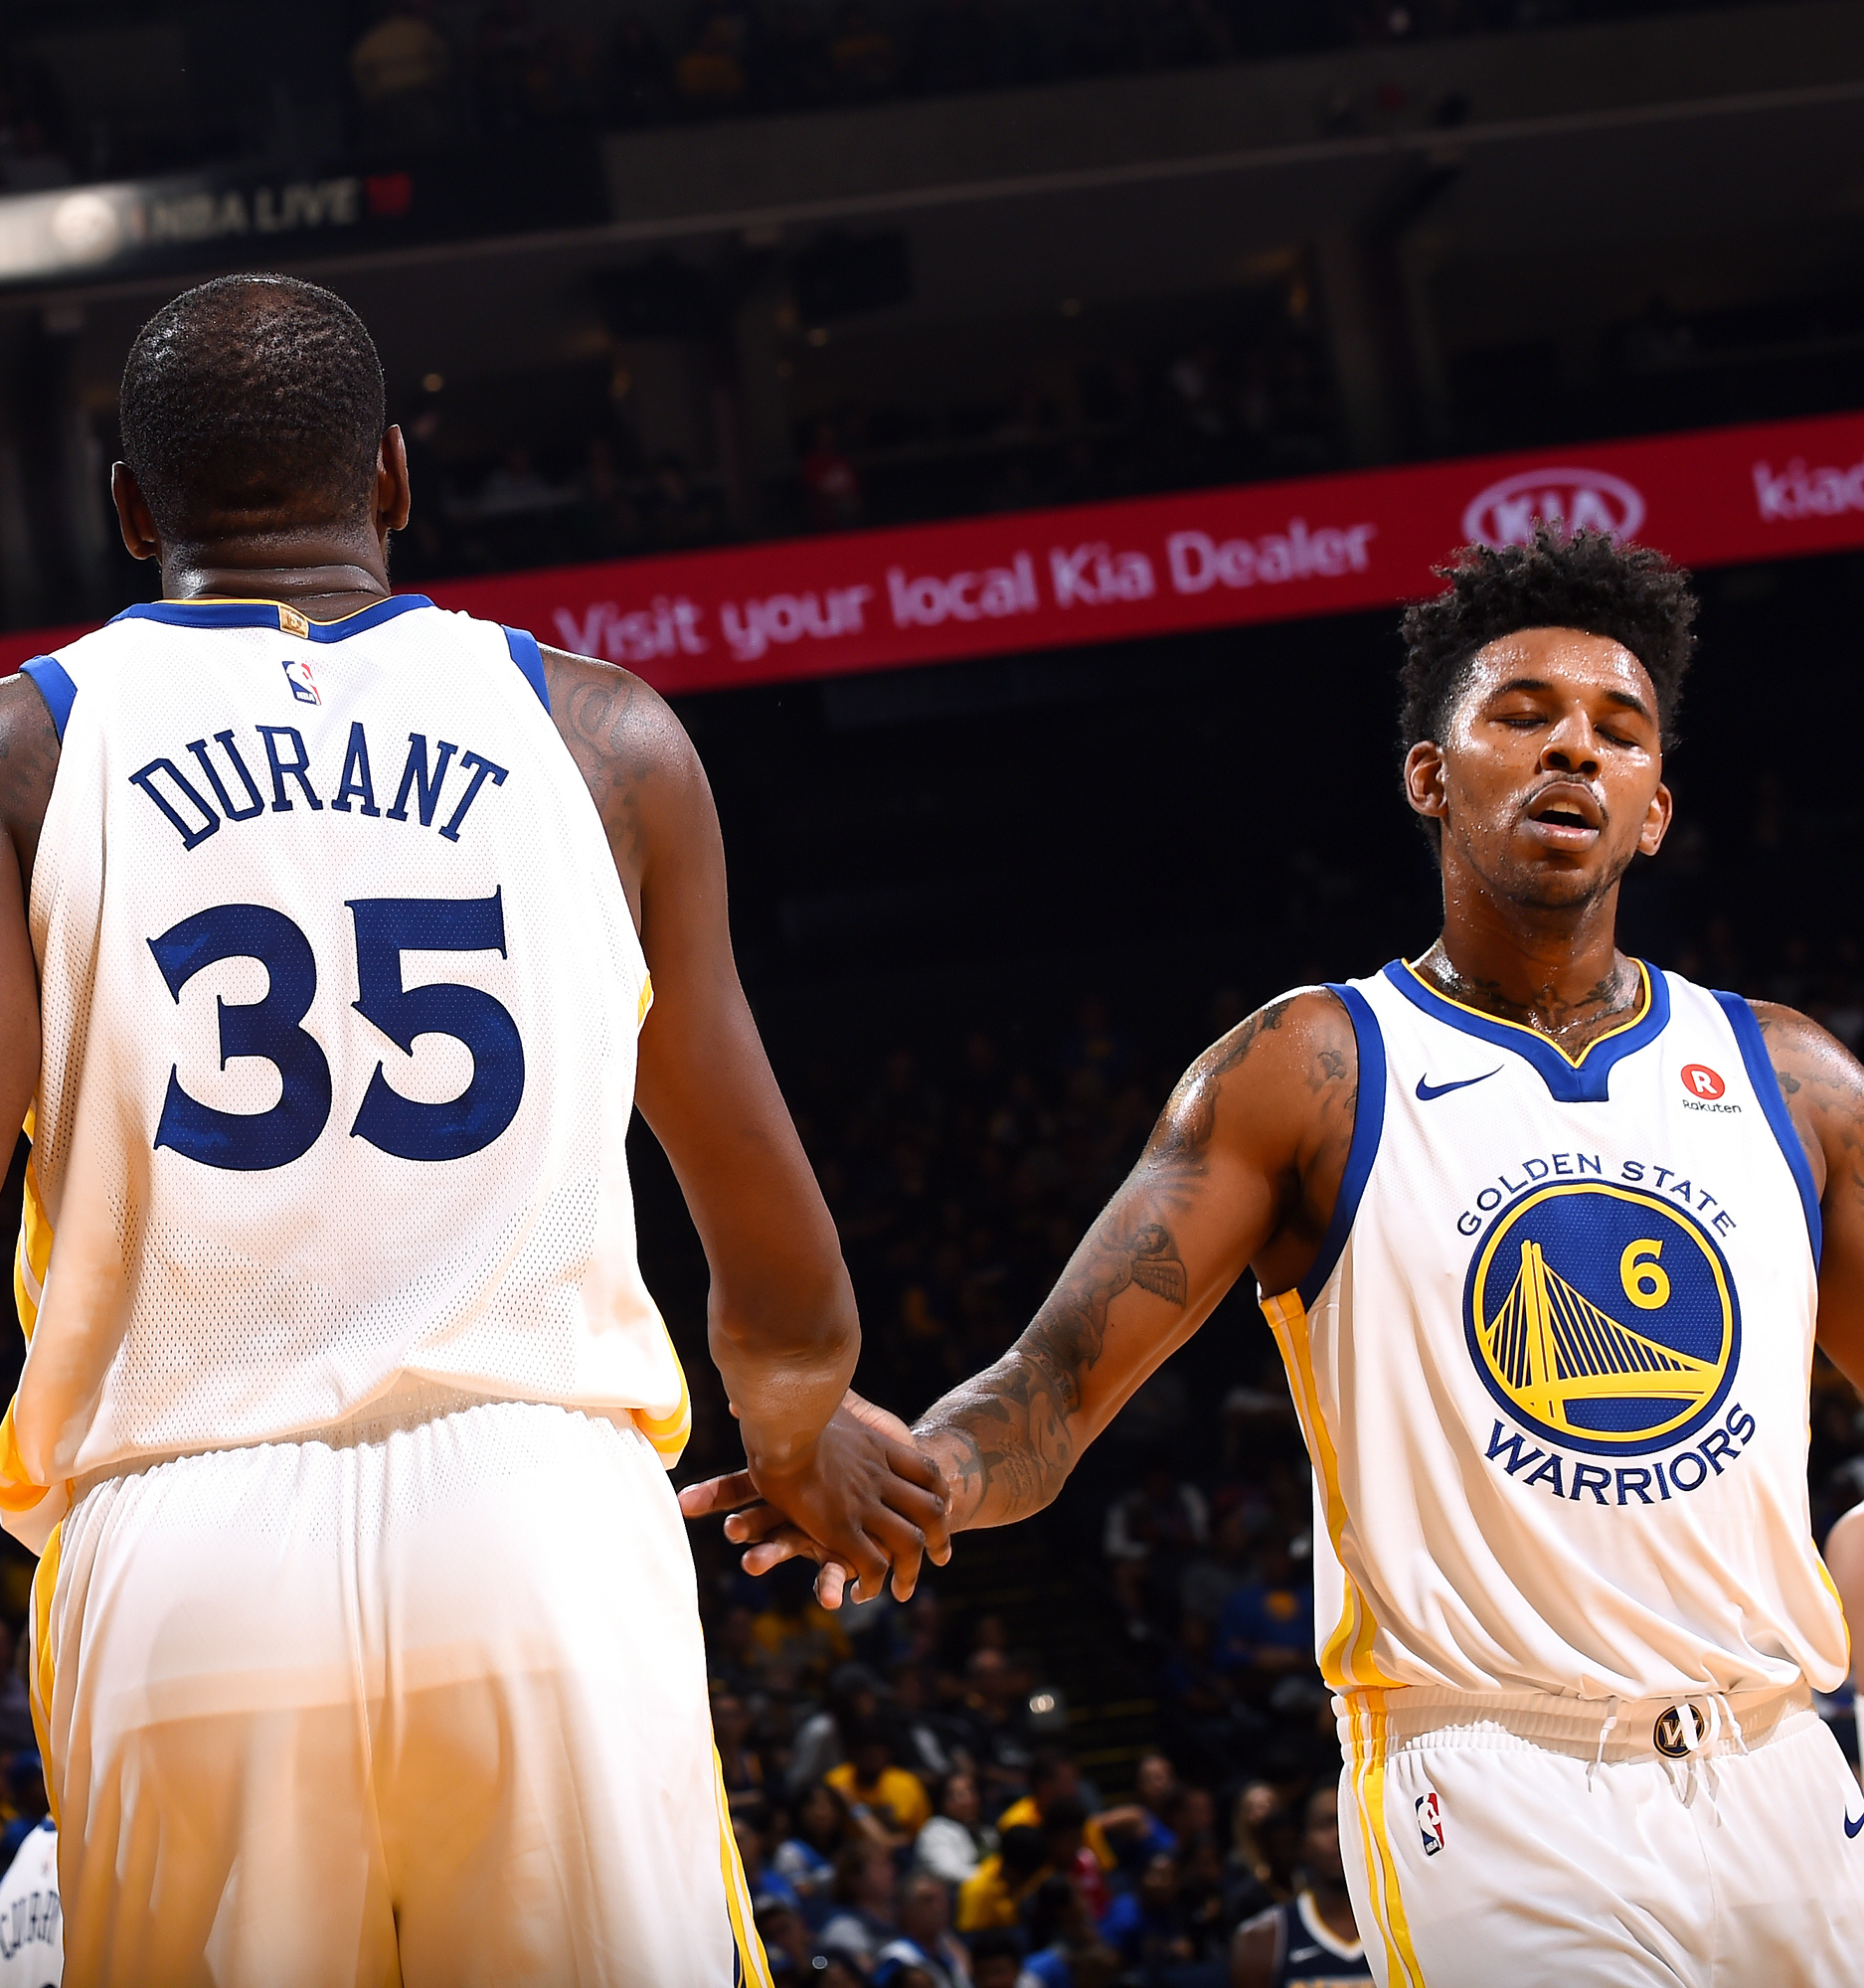 5a0bda5e3 Kevin Durant (left) and Nick Young of the Golden State Warriors high-five  each other during their preseason game against the Denver Nuggets on Sept.